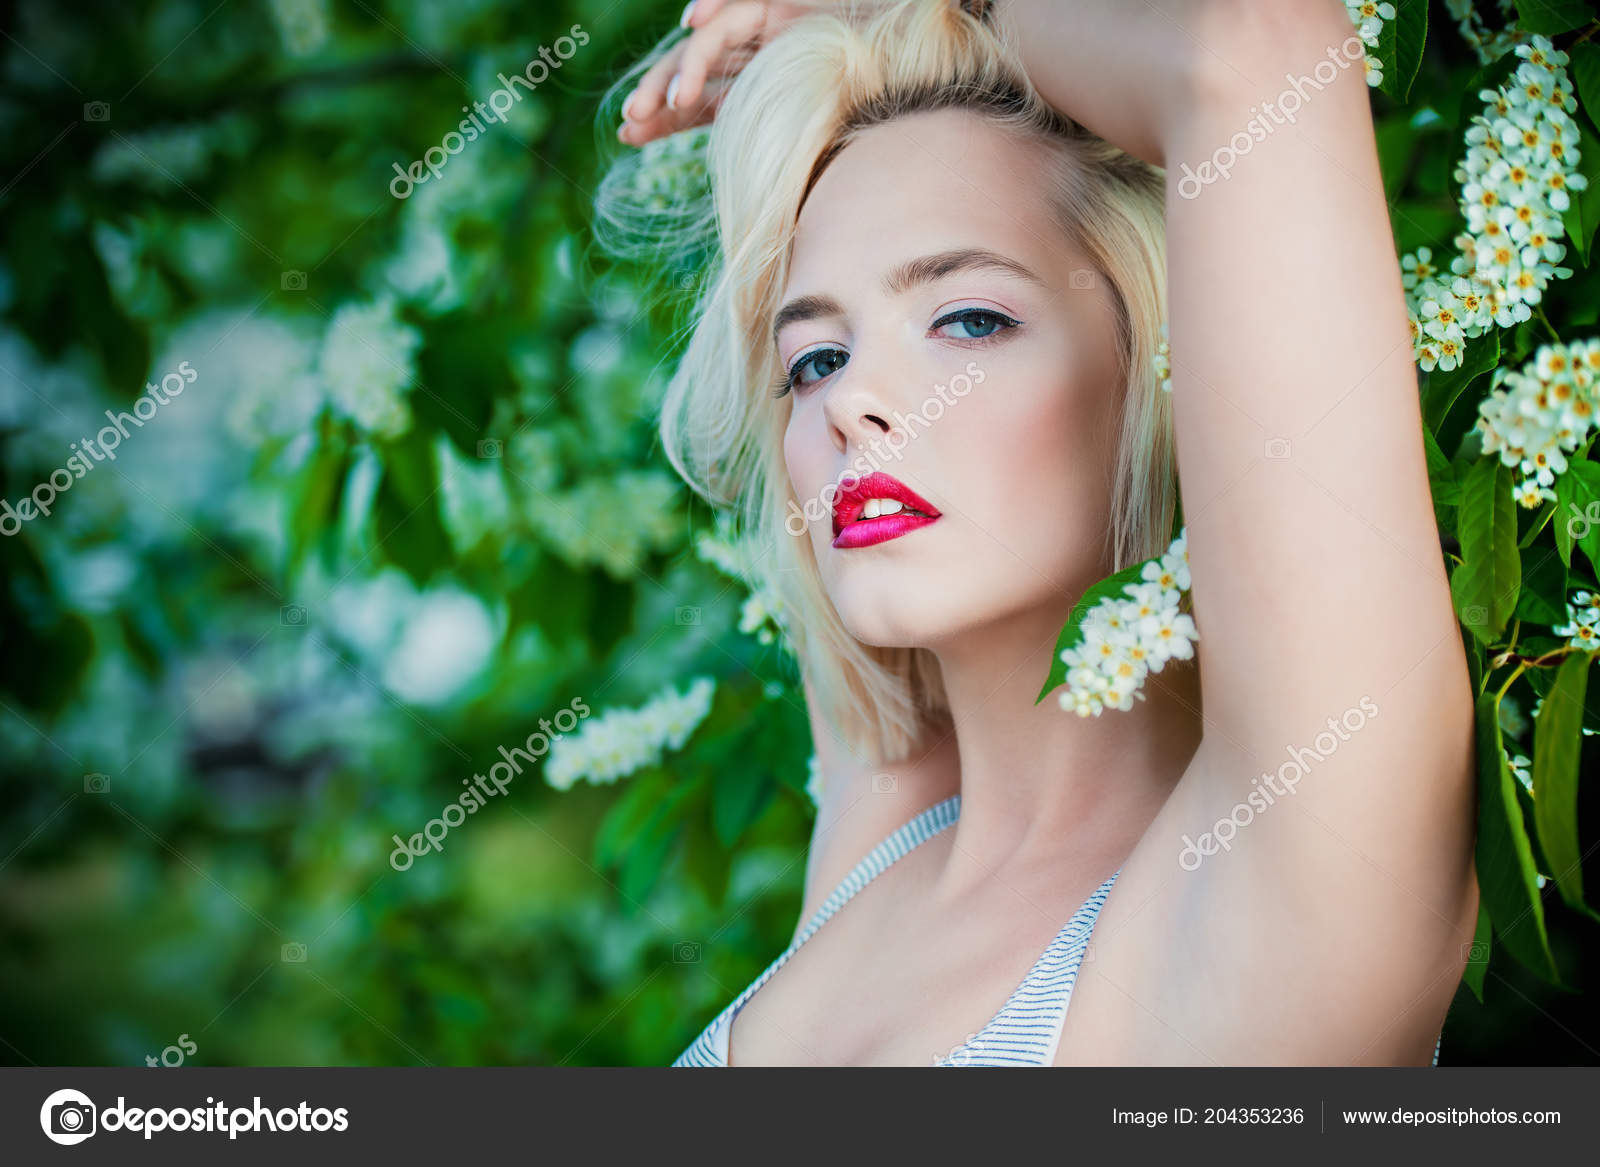 Outdoor young beauty blonde